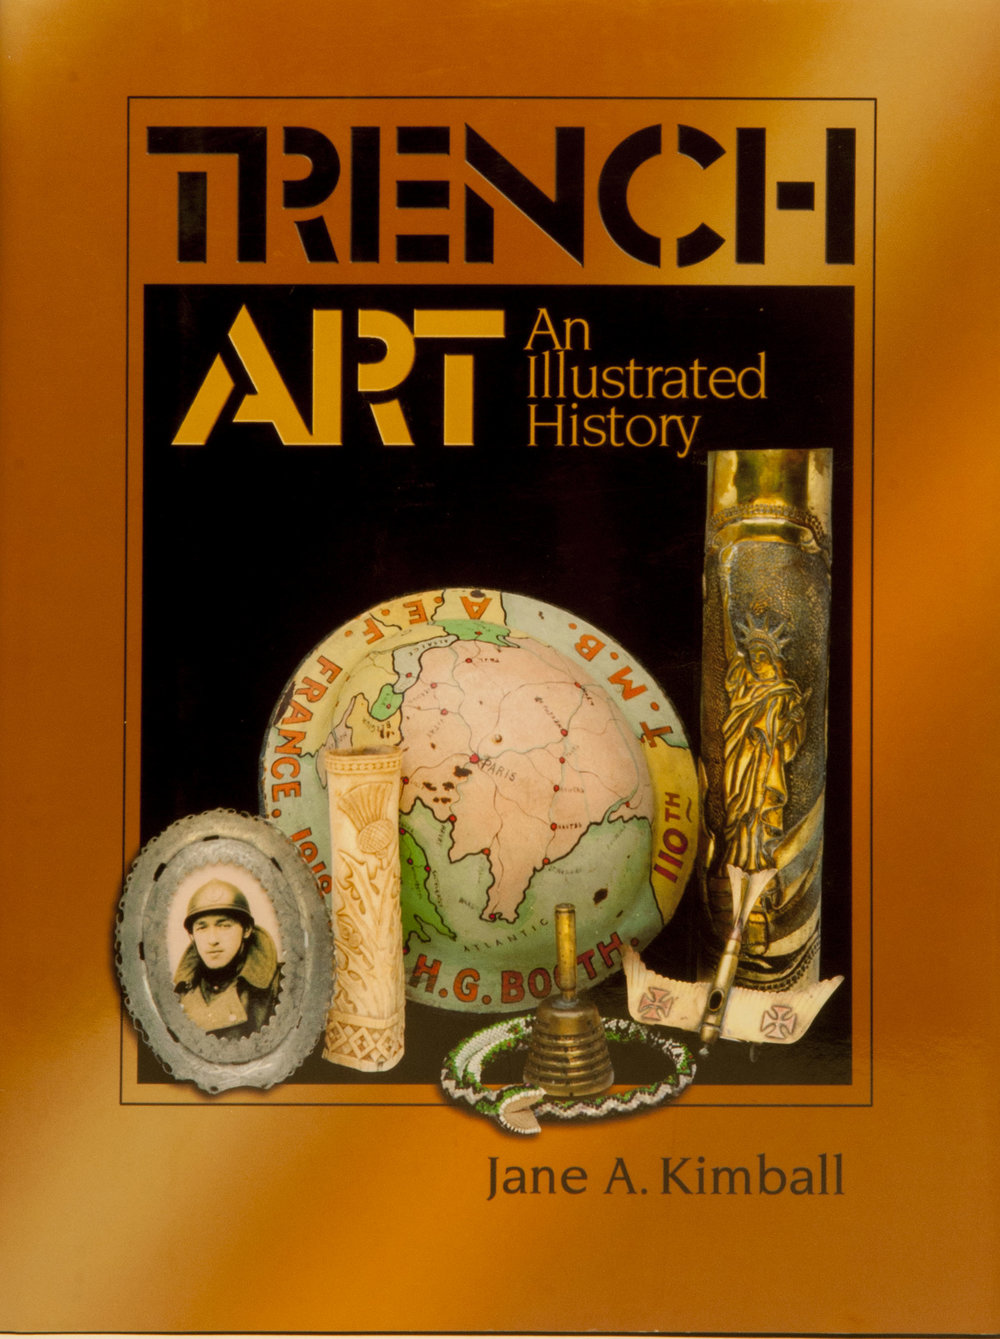 Trench Art By Jane Kimball.jpg